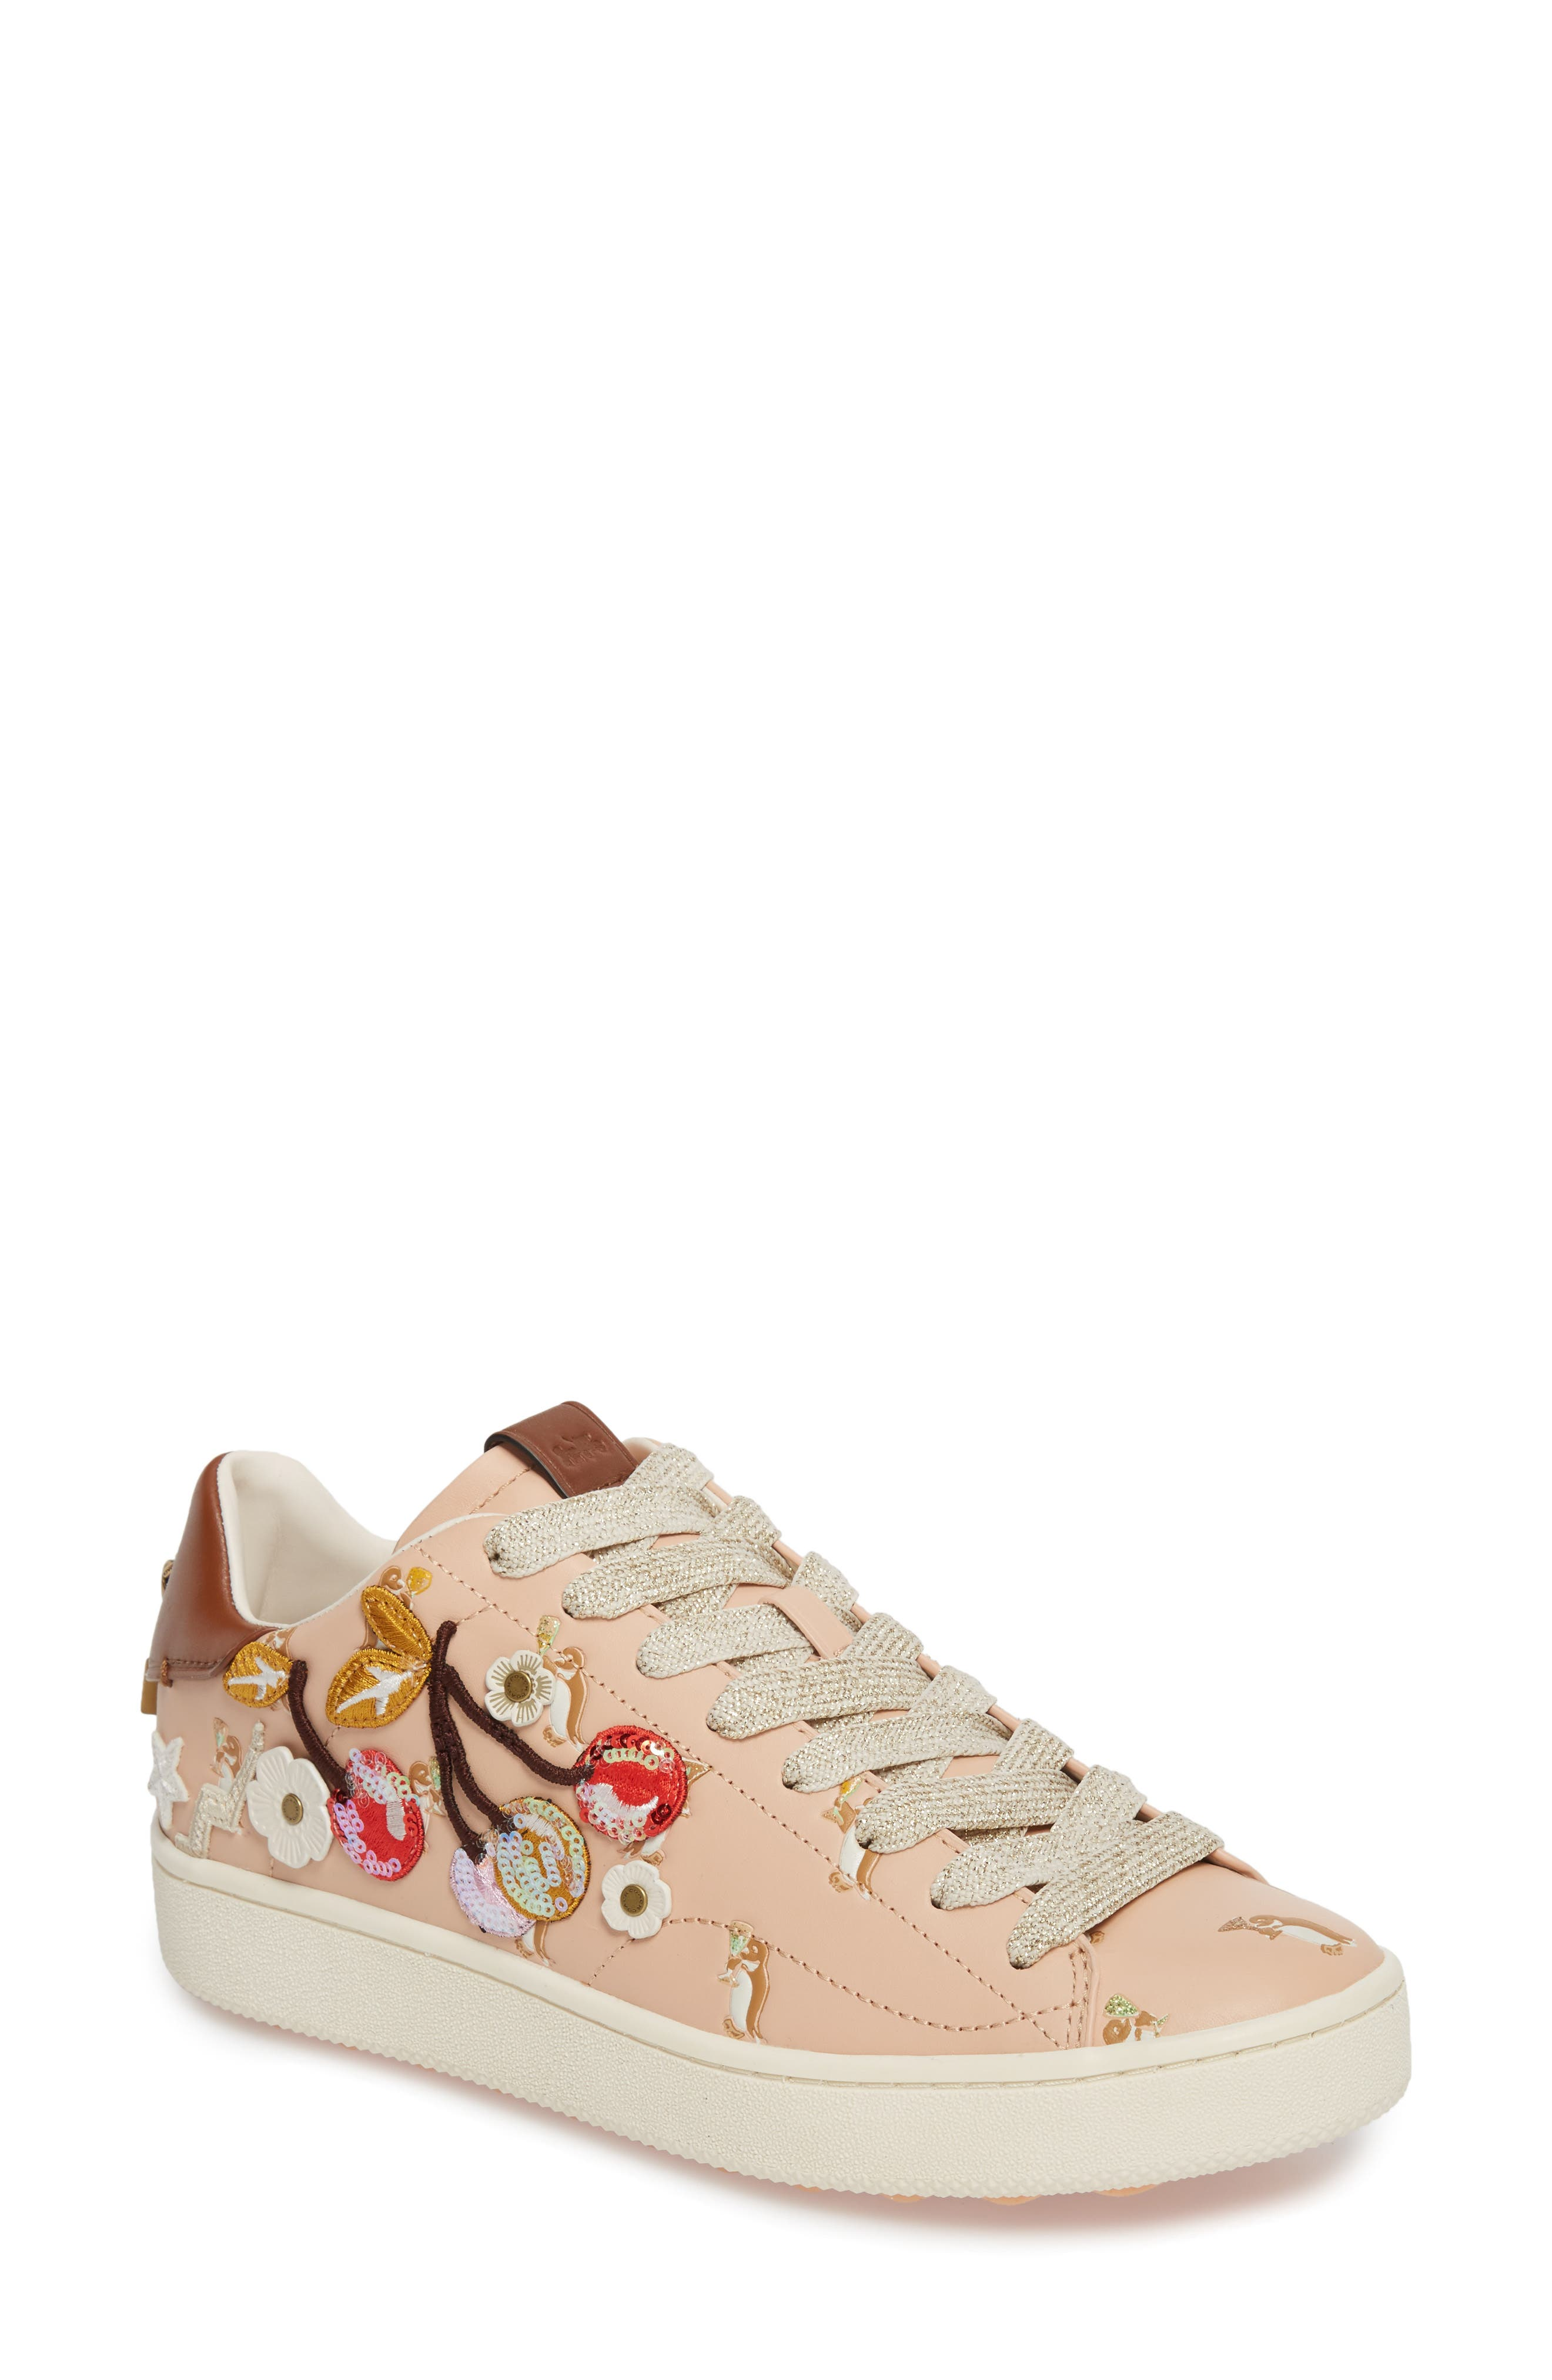 Patch Sneaker,                         Main,                         color, Light Pink Leather